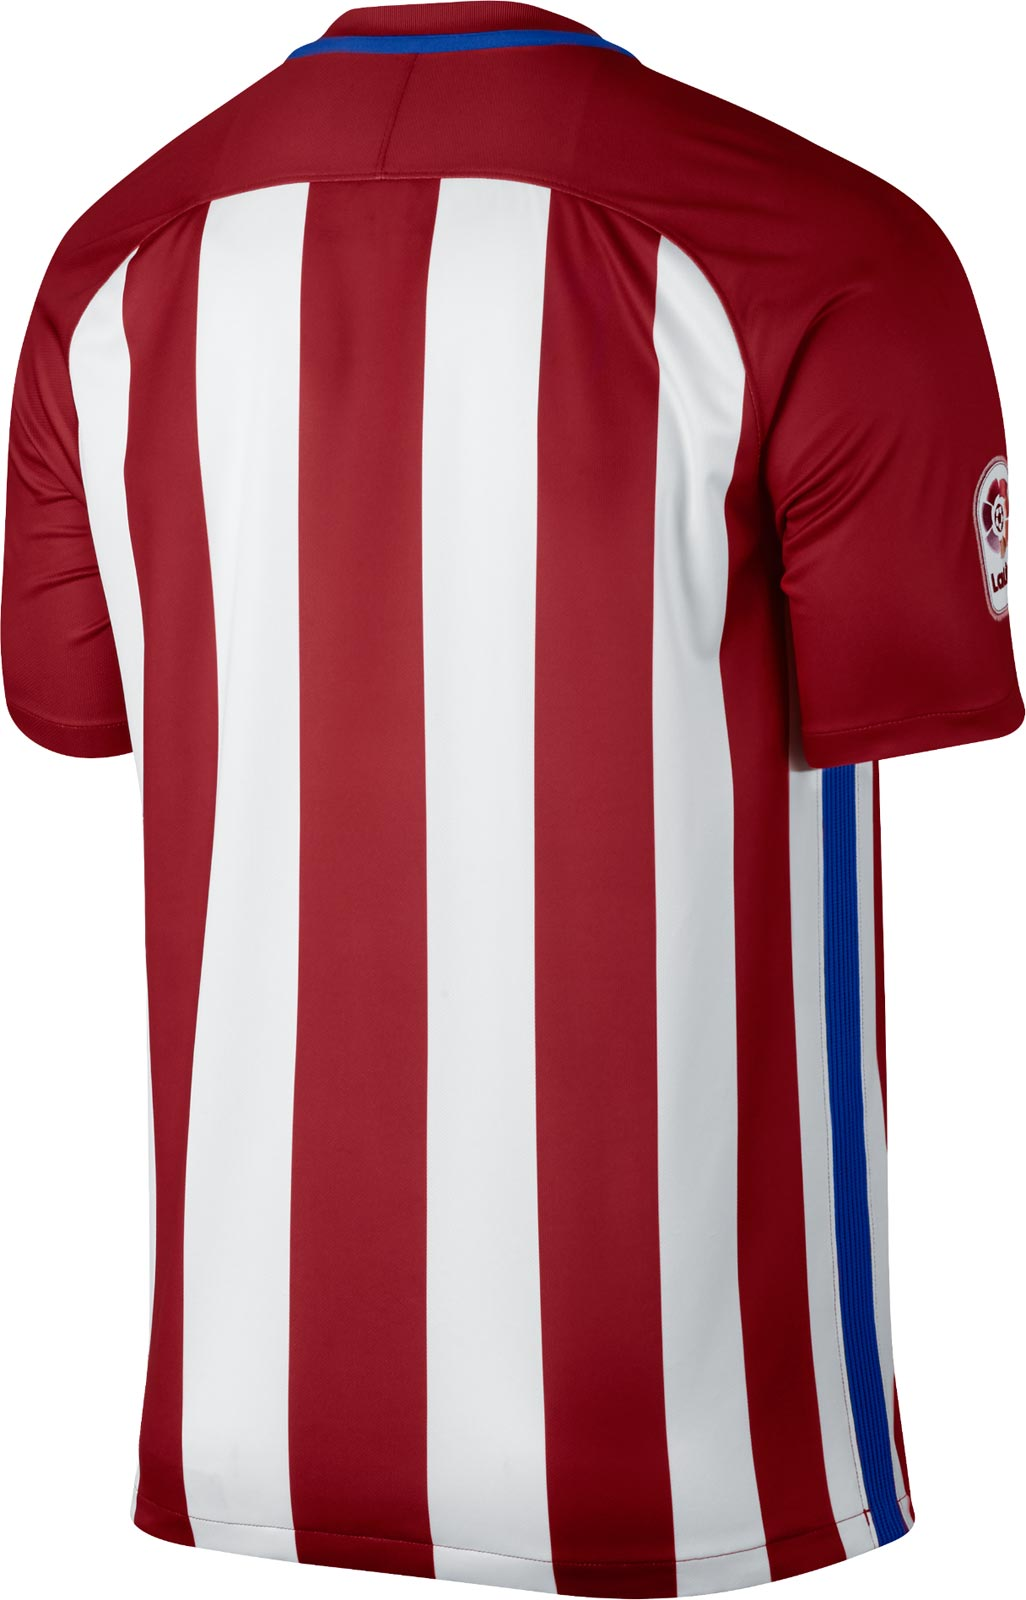 Atletico Madrid 2016 17 Home Kit Unveiled 1767a9ec0